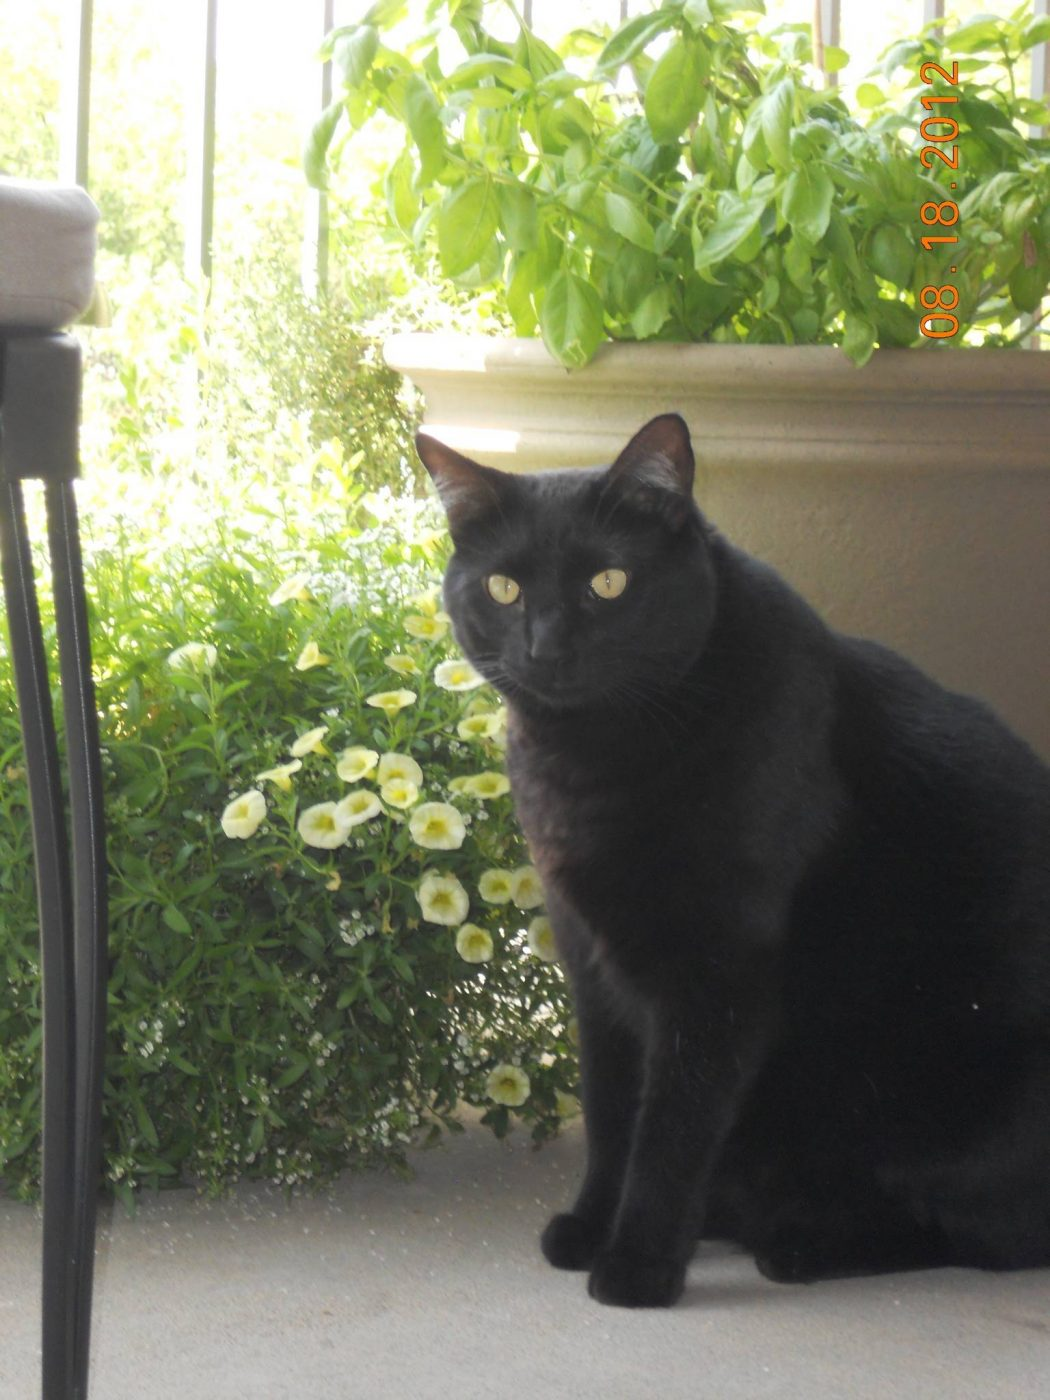 91 The Most Beautiful Black Cats